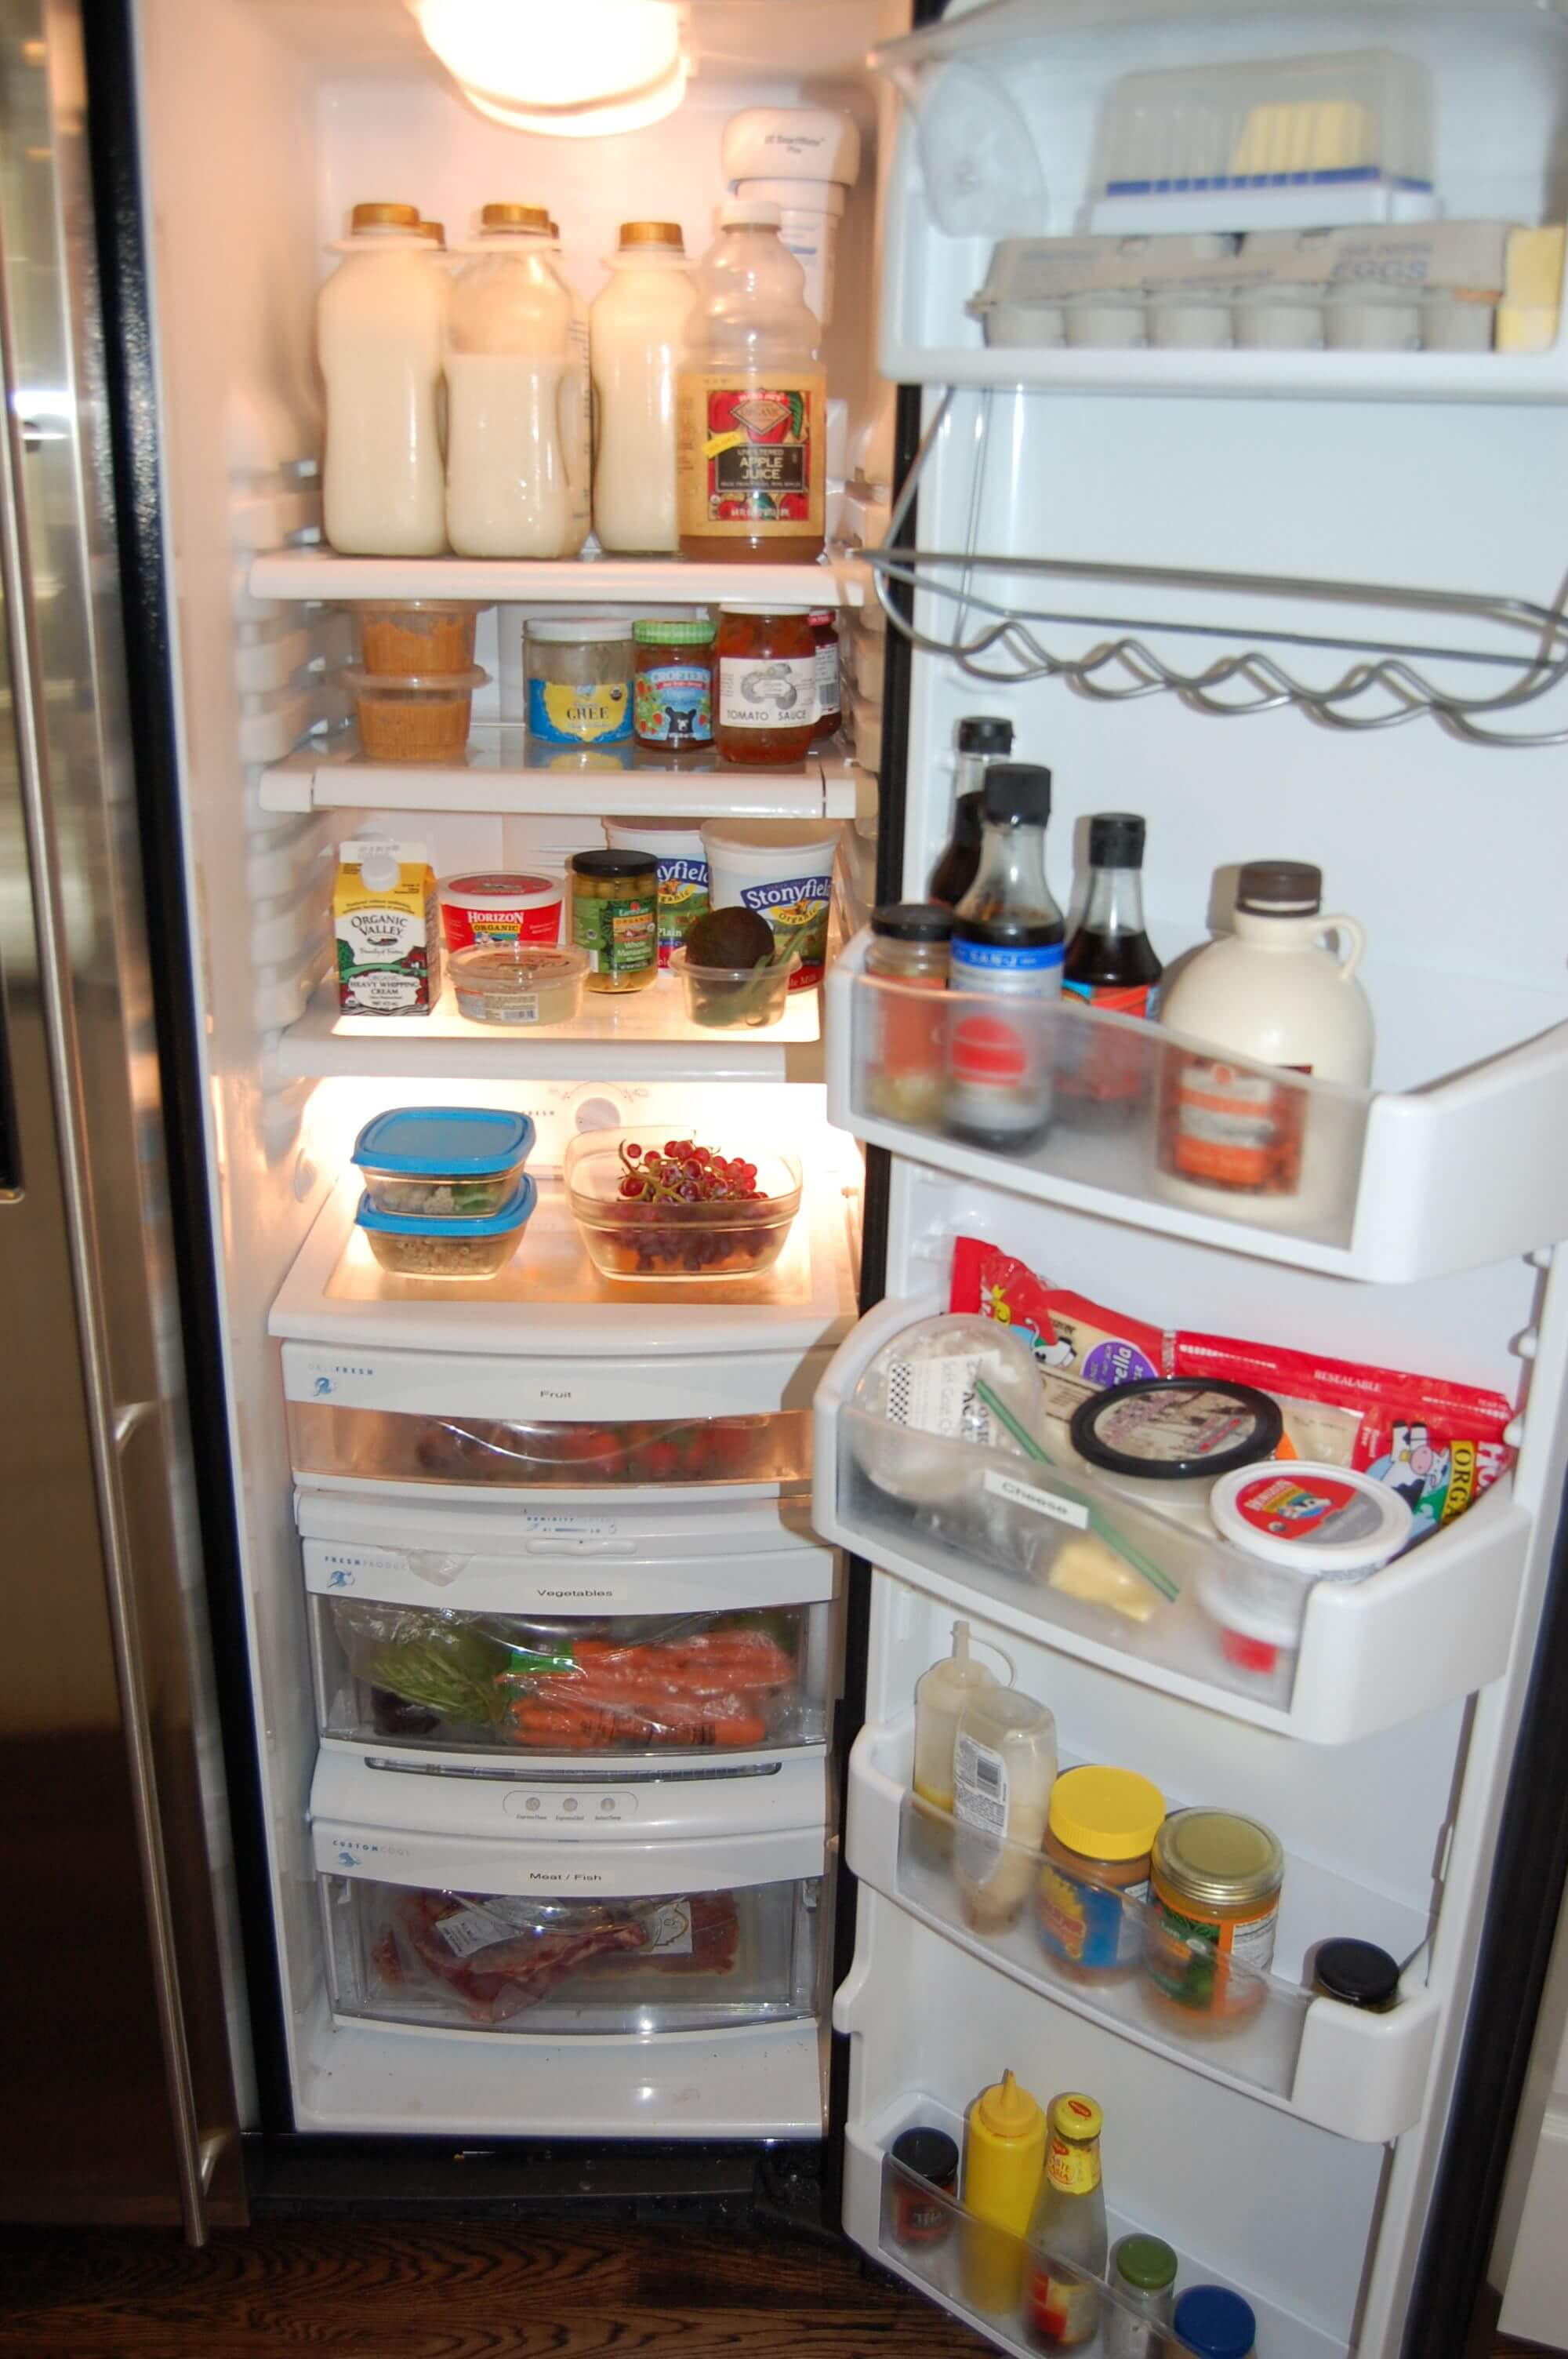 Real food tips 21 essentials for freezer pantry fridge How long will spaghetti last in the refrigerator